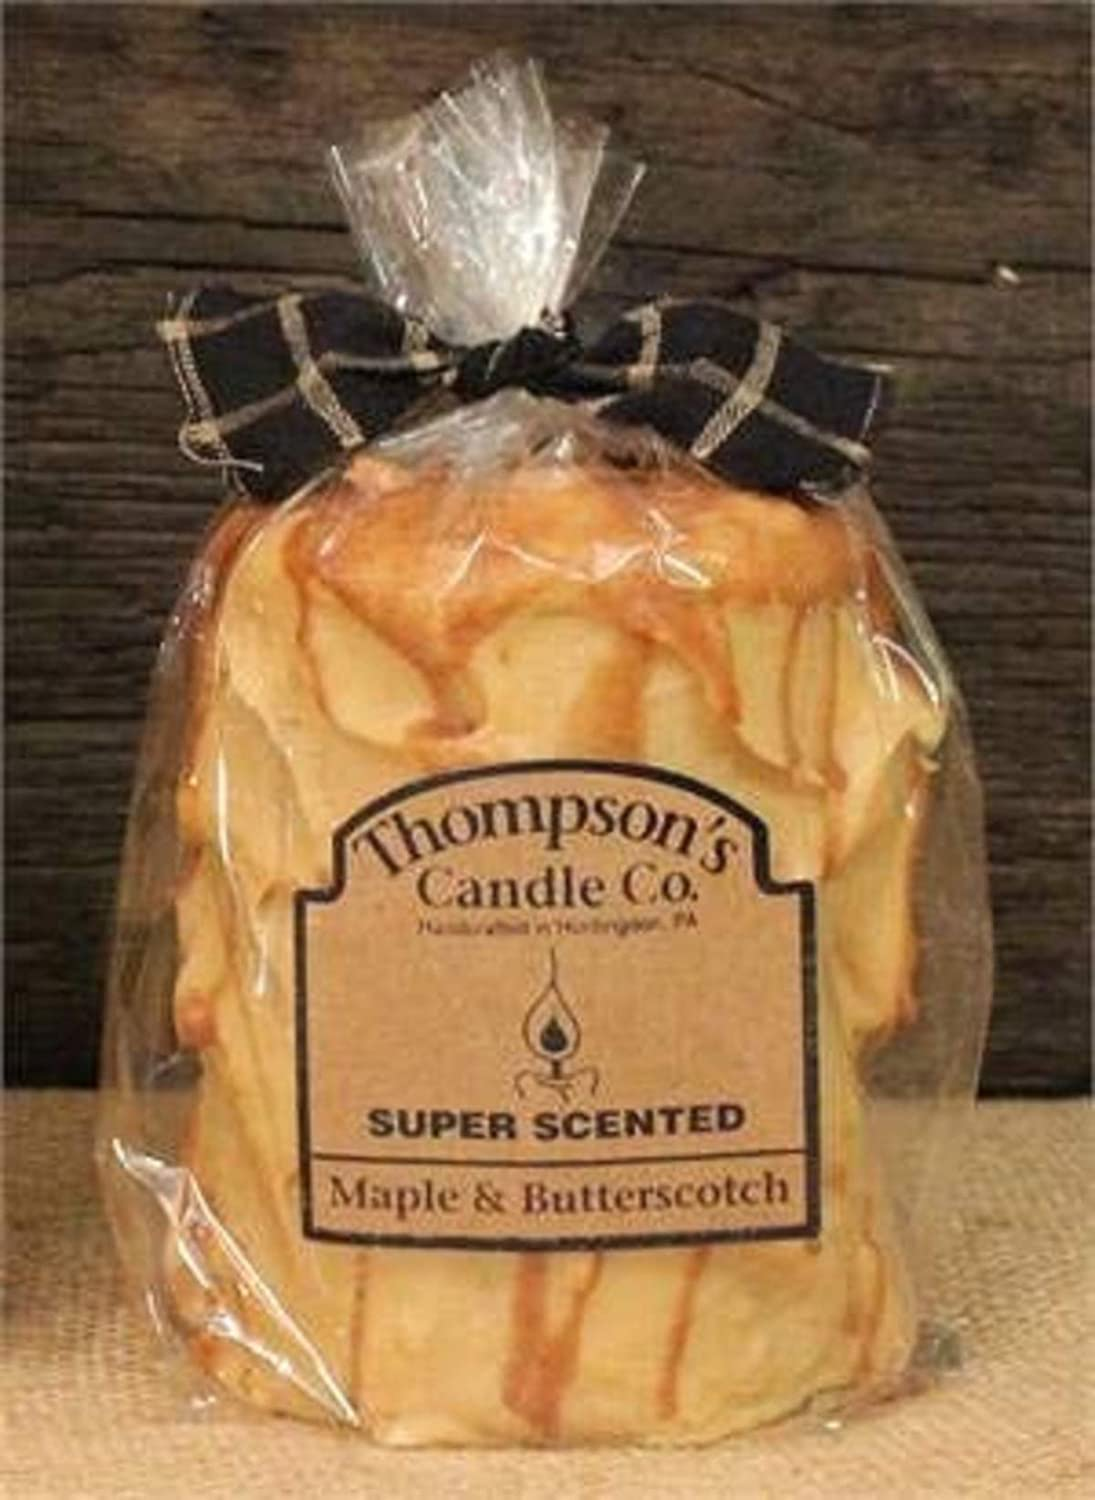 Thompson's Candle mbmp Super Scented Maple and Butterscotch Medium Pillar, 4.25-inch Tall